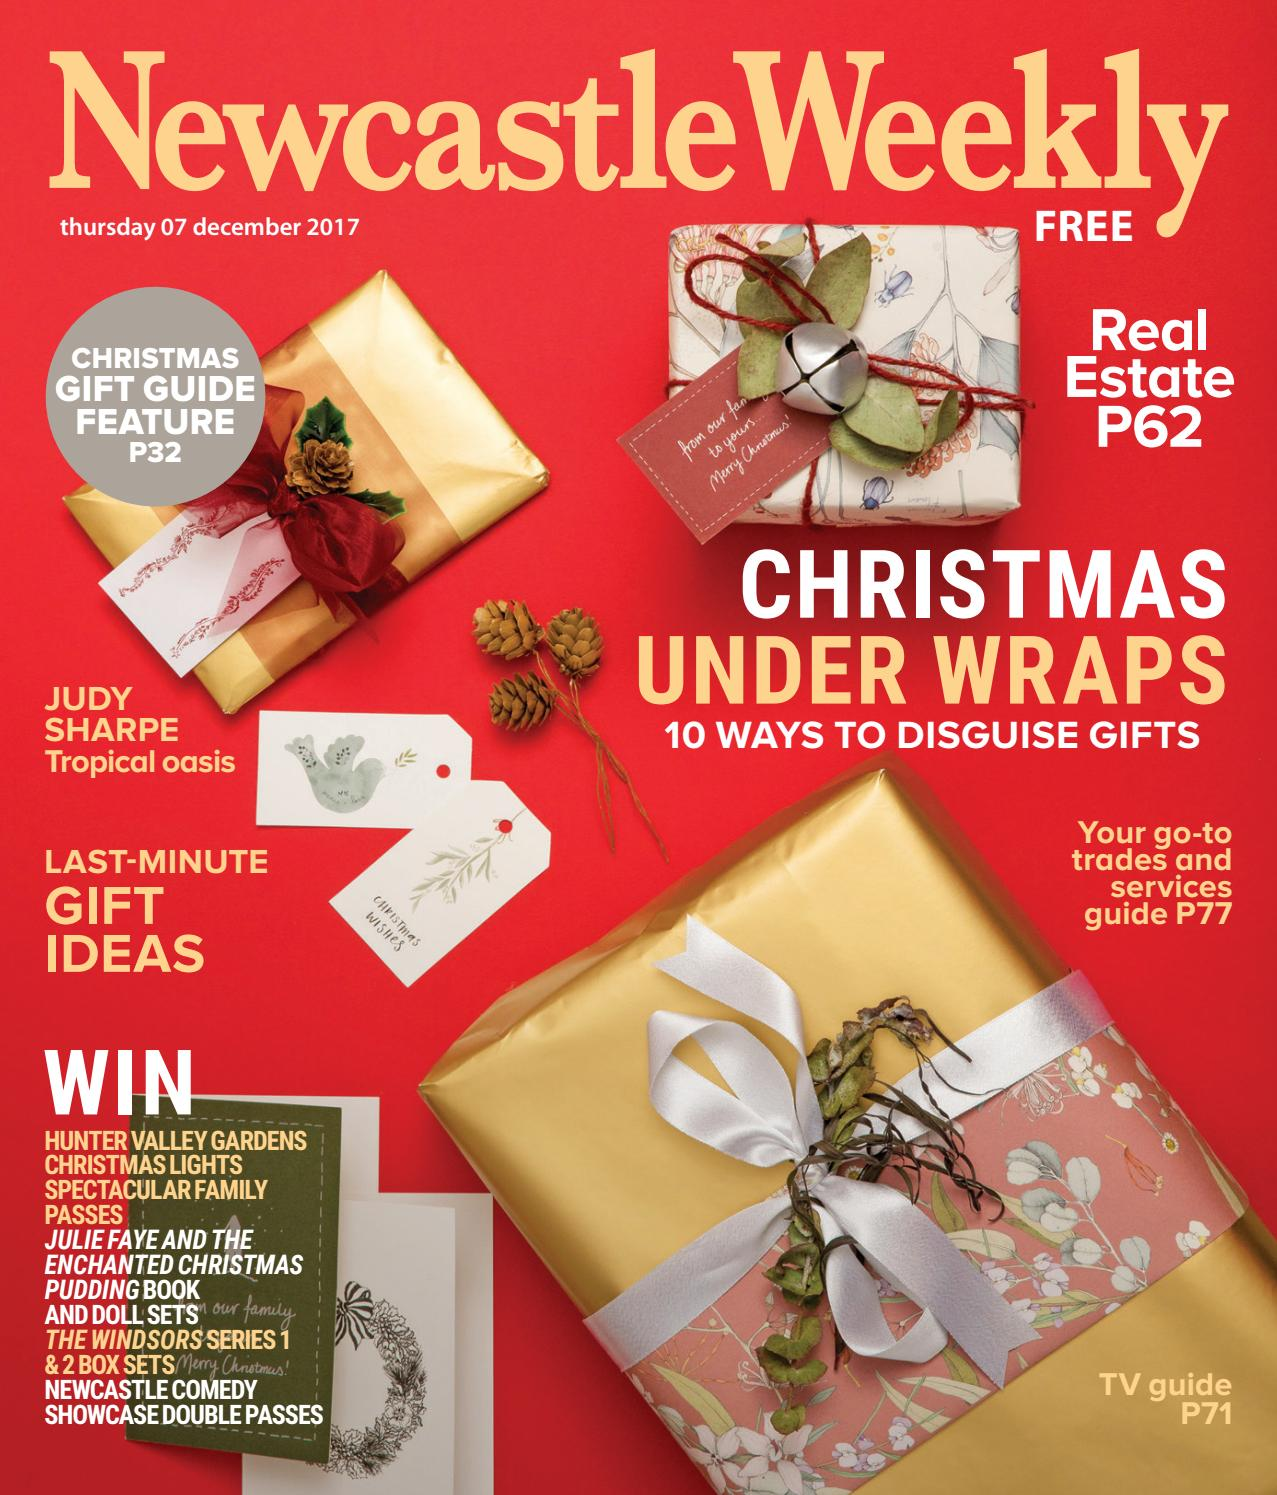 December By Newcastle Weekly Magazine Issuu - Free catering invoice template gucci outlet store online